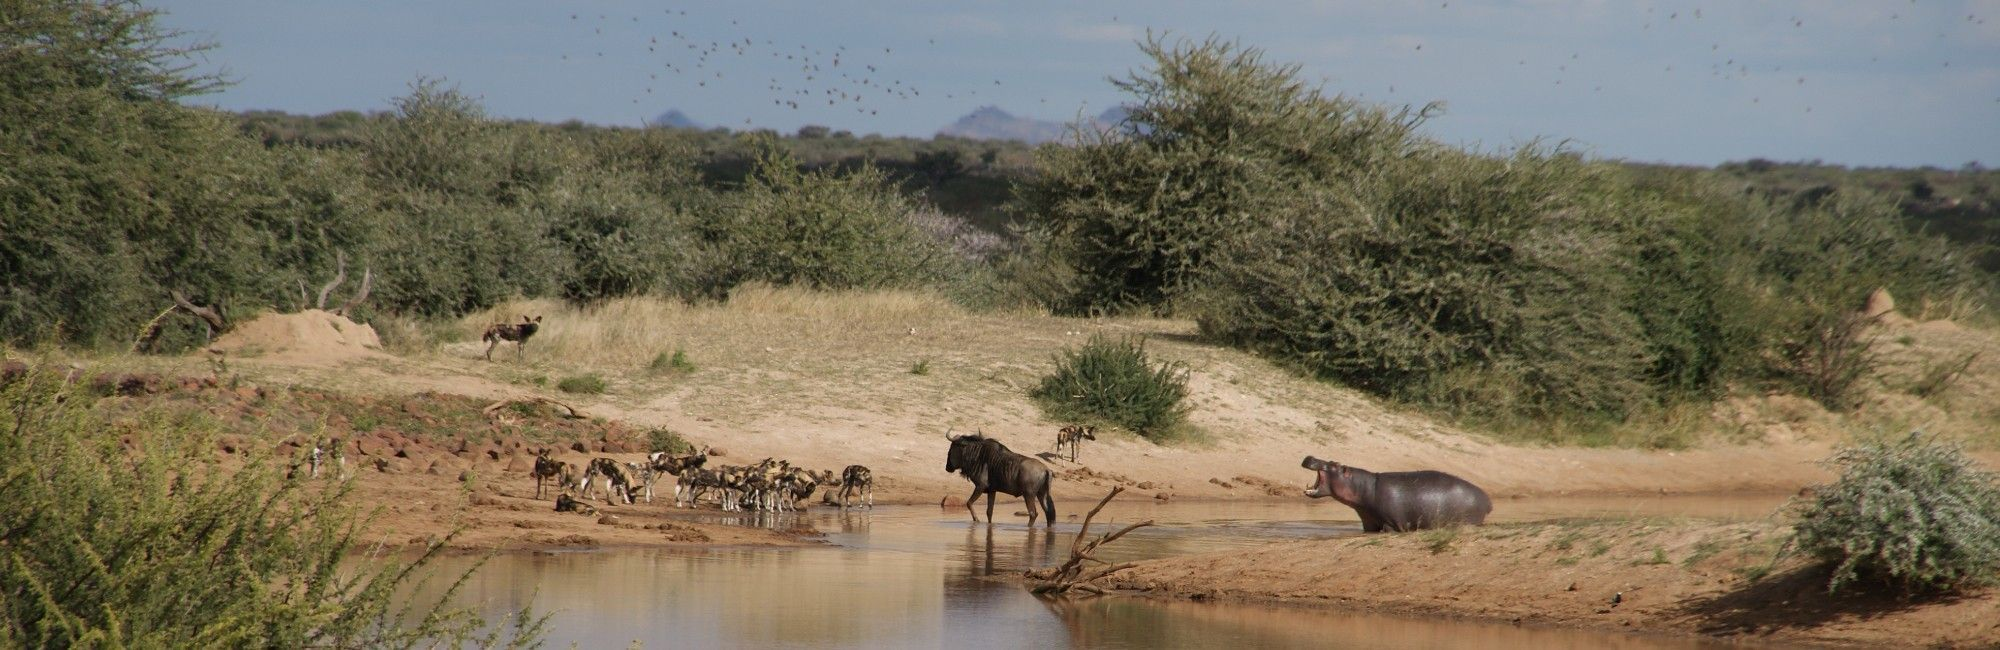 Namibie private reserve